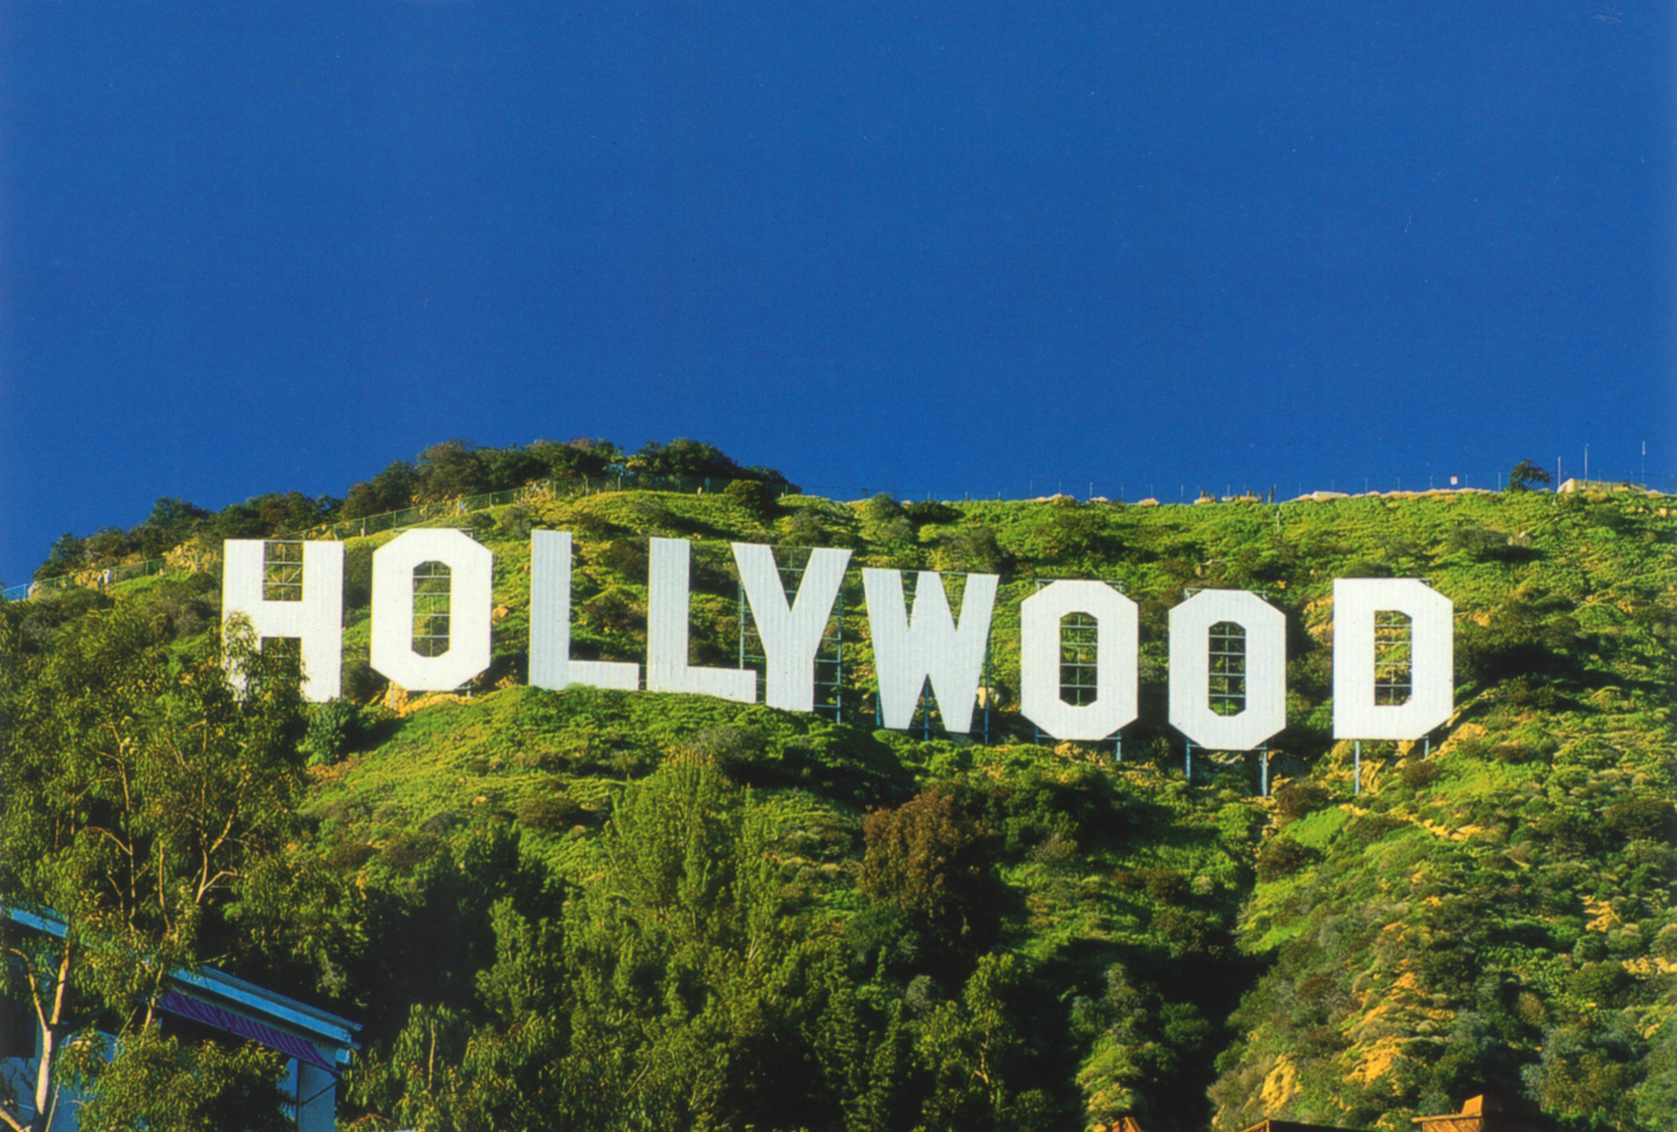 Los Angeles clipart Hollywood Sign Clipart Sign hollywood Wallpaper Sign clipart